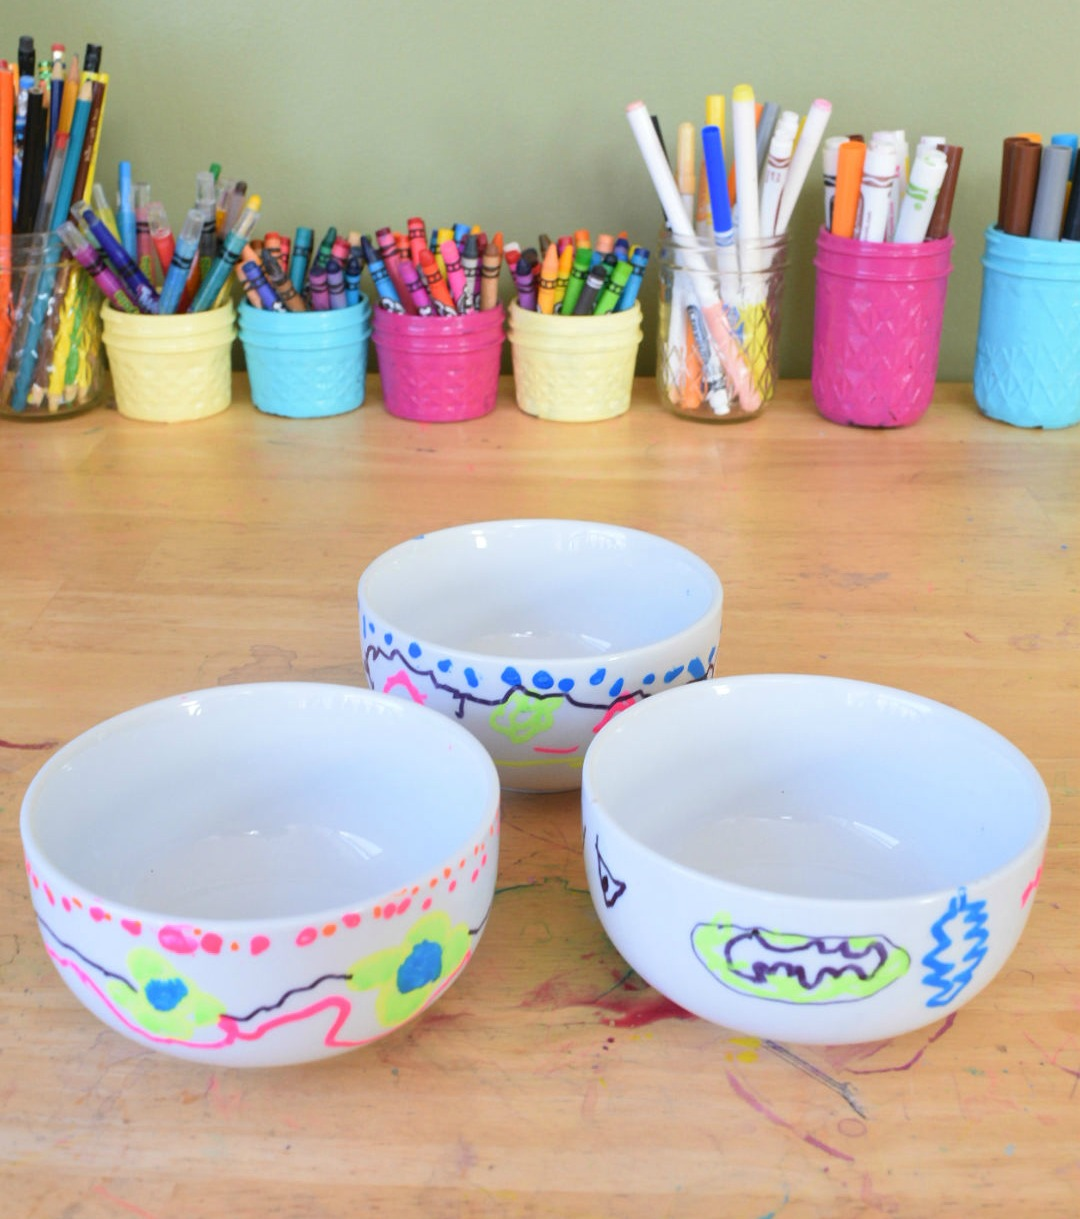 finished diy painted bowls